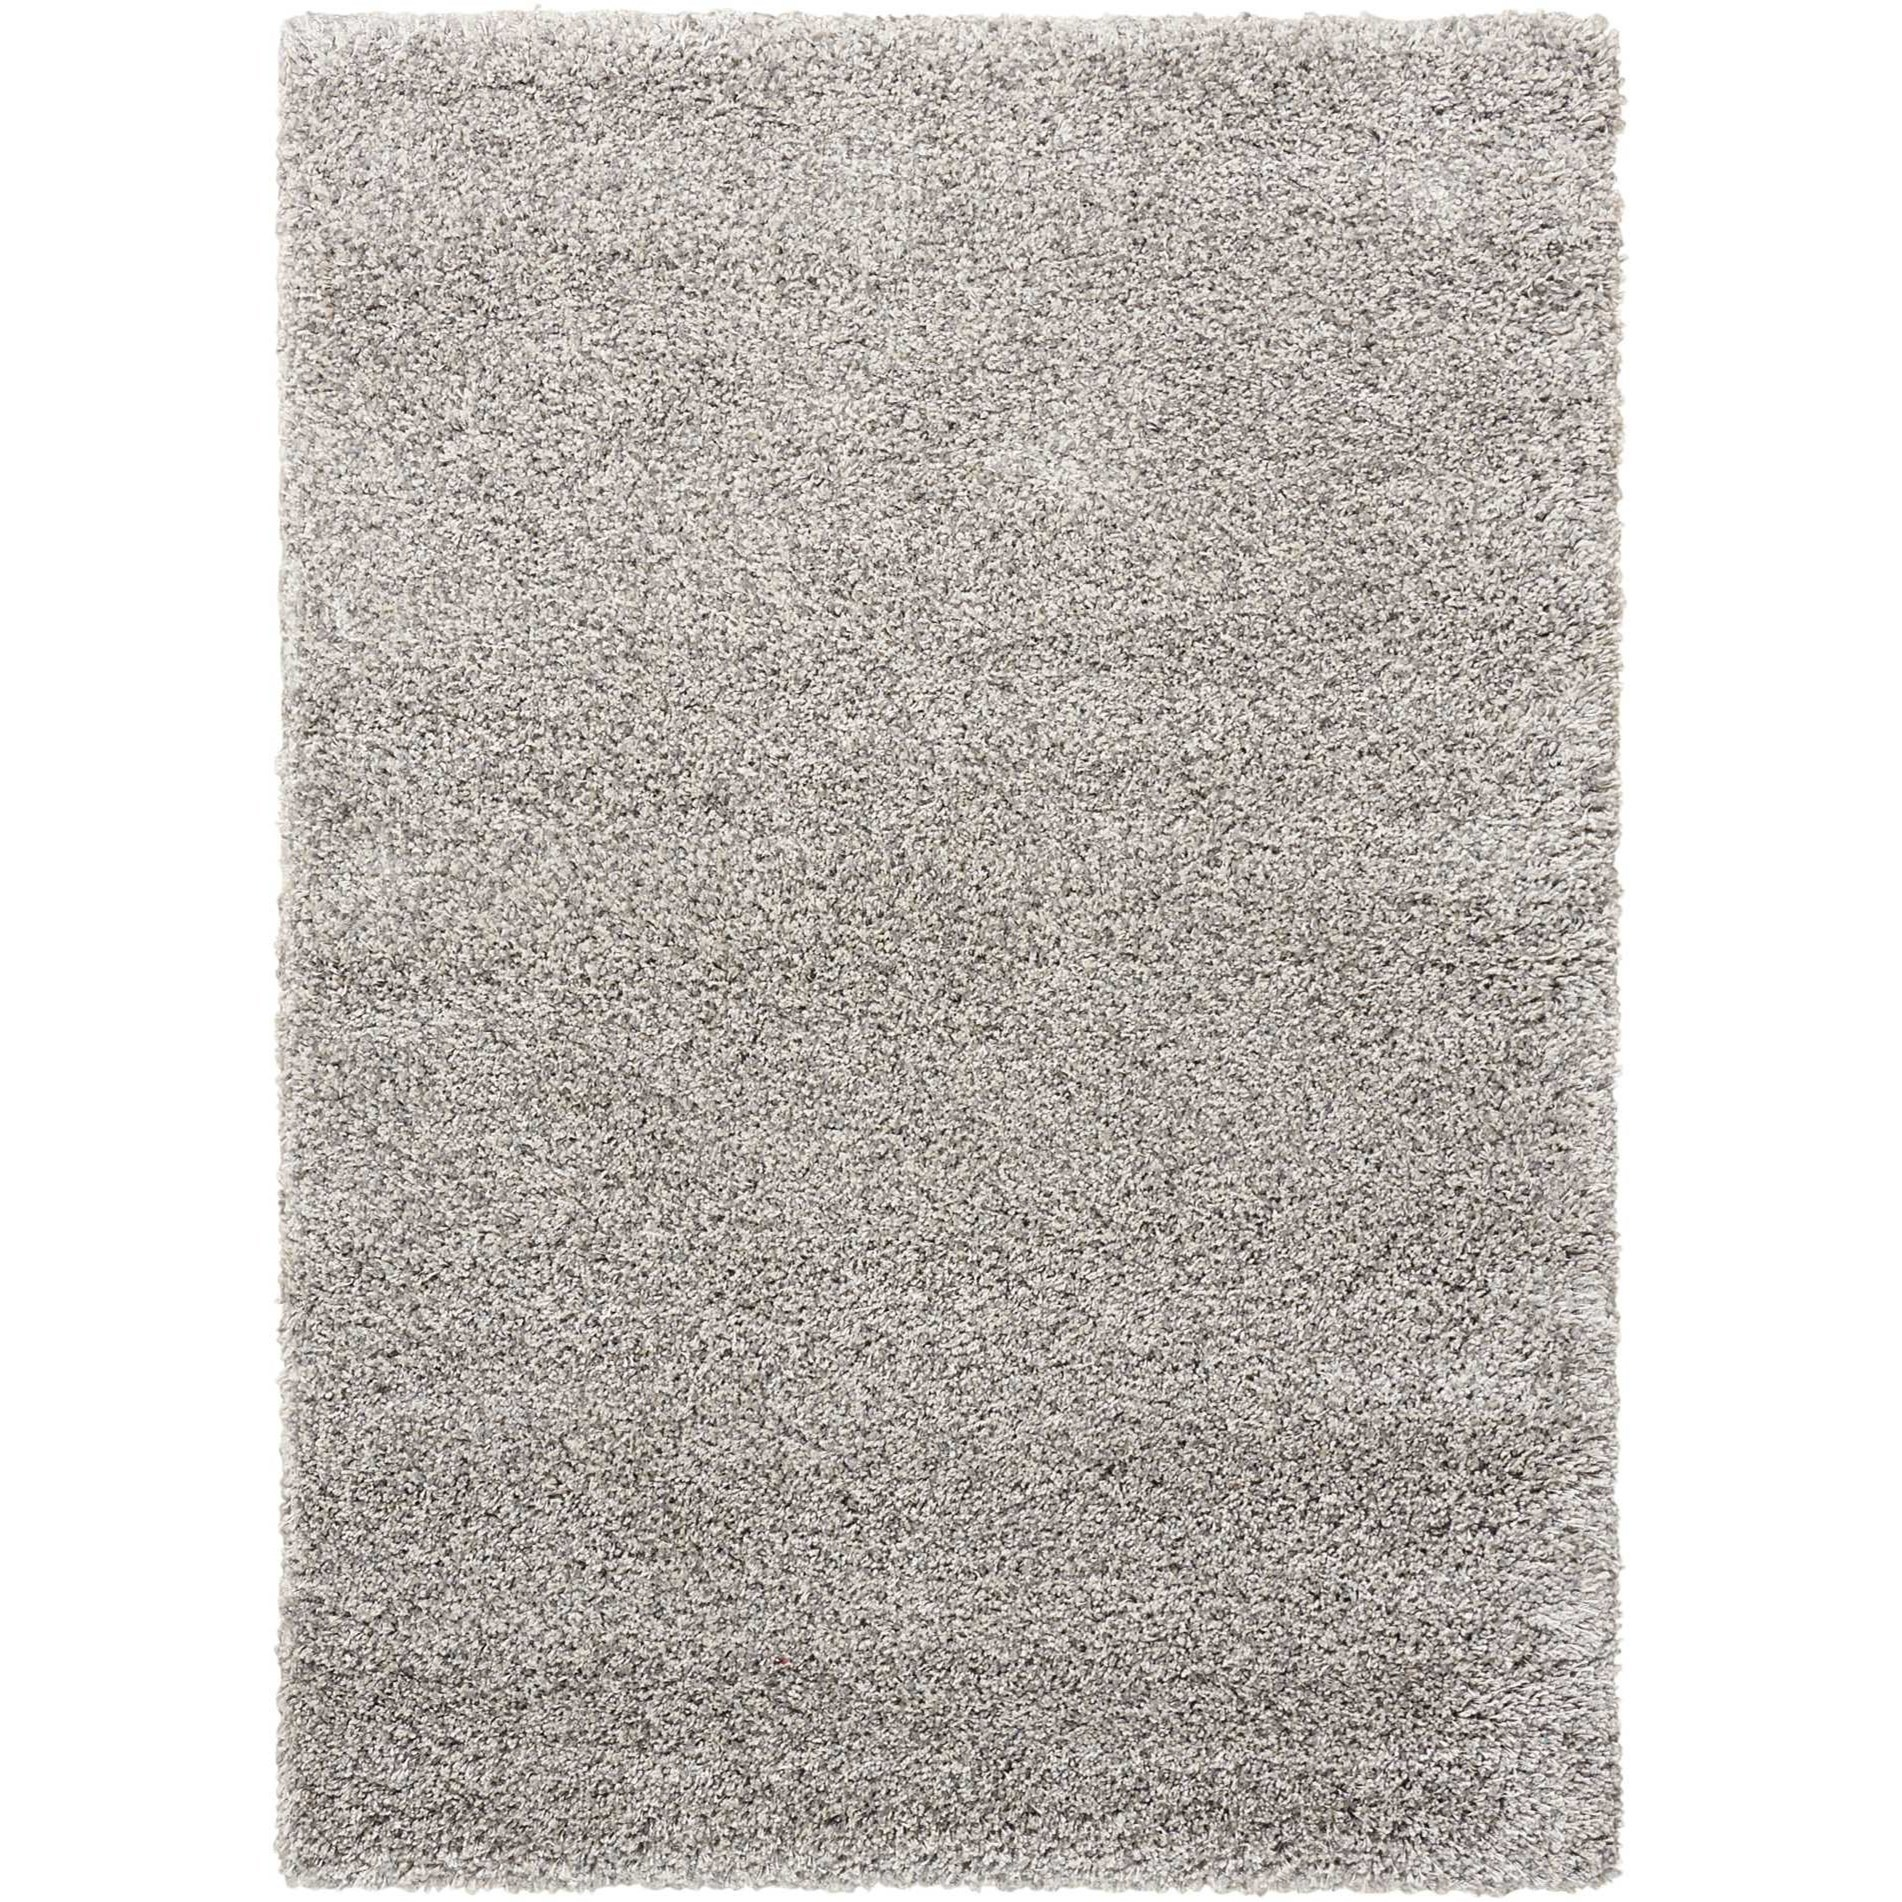 """Amore 7'10"""" x 10'10"""" Lt Grey Rectangle Rug by Nourison at Home Collections Furniture"""